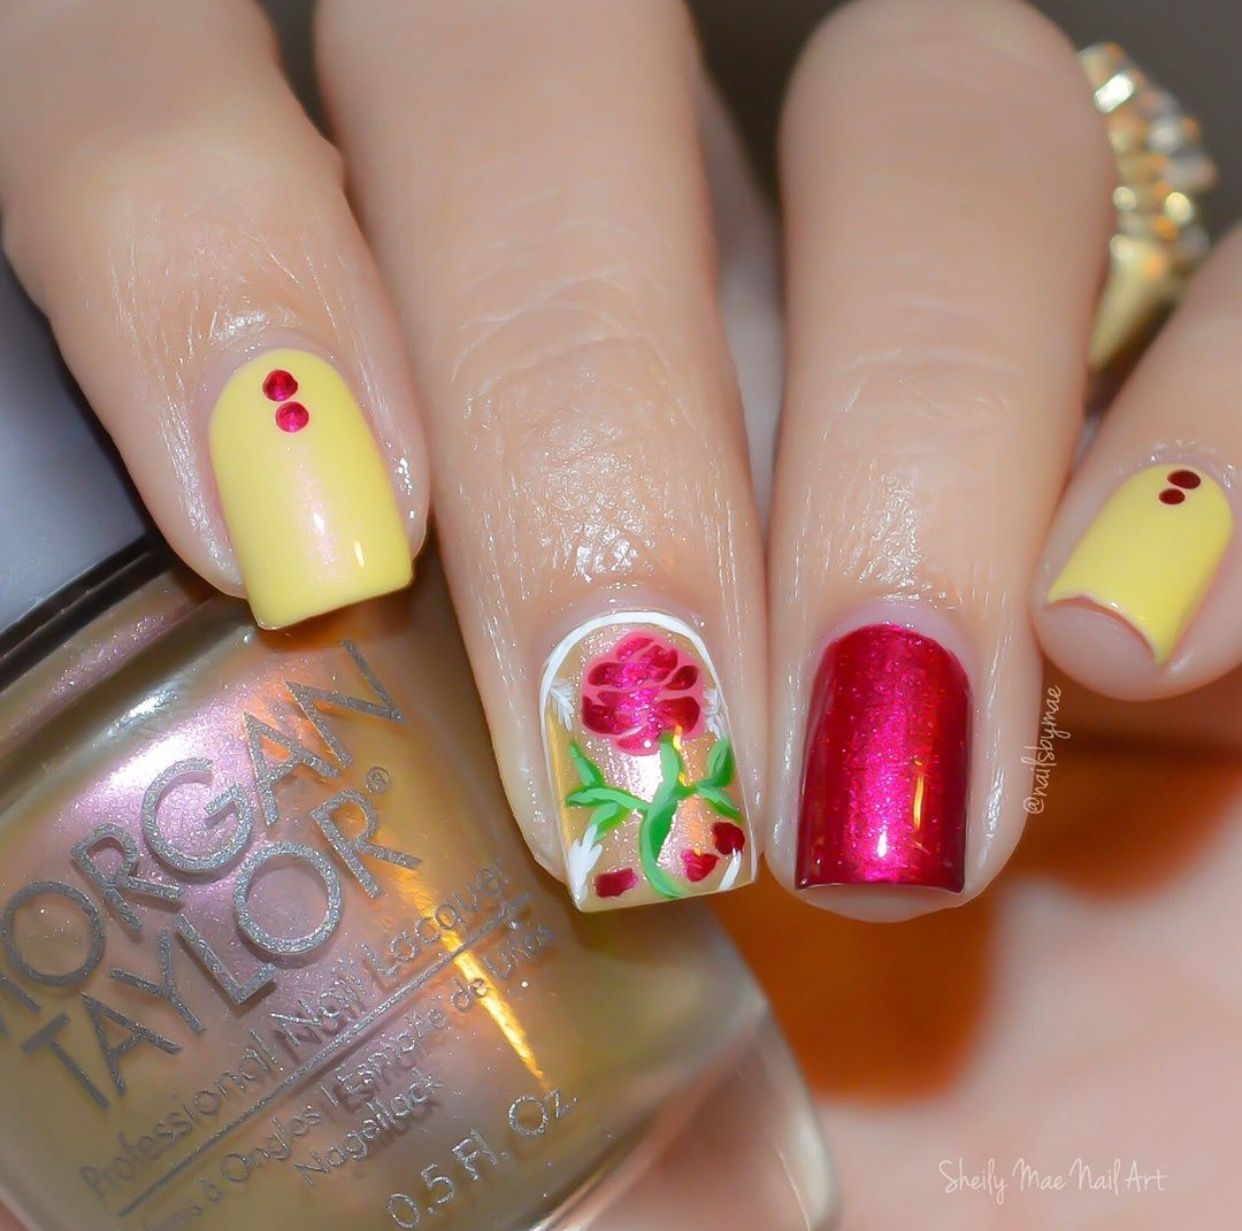 Beauty and the beast nails | Disney nails | Pinterest | Nagellack